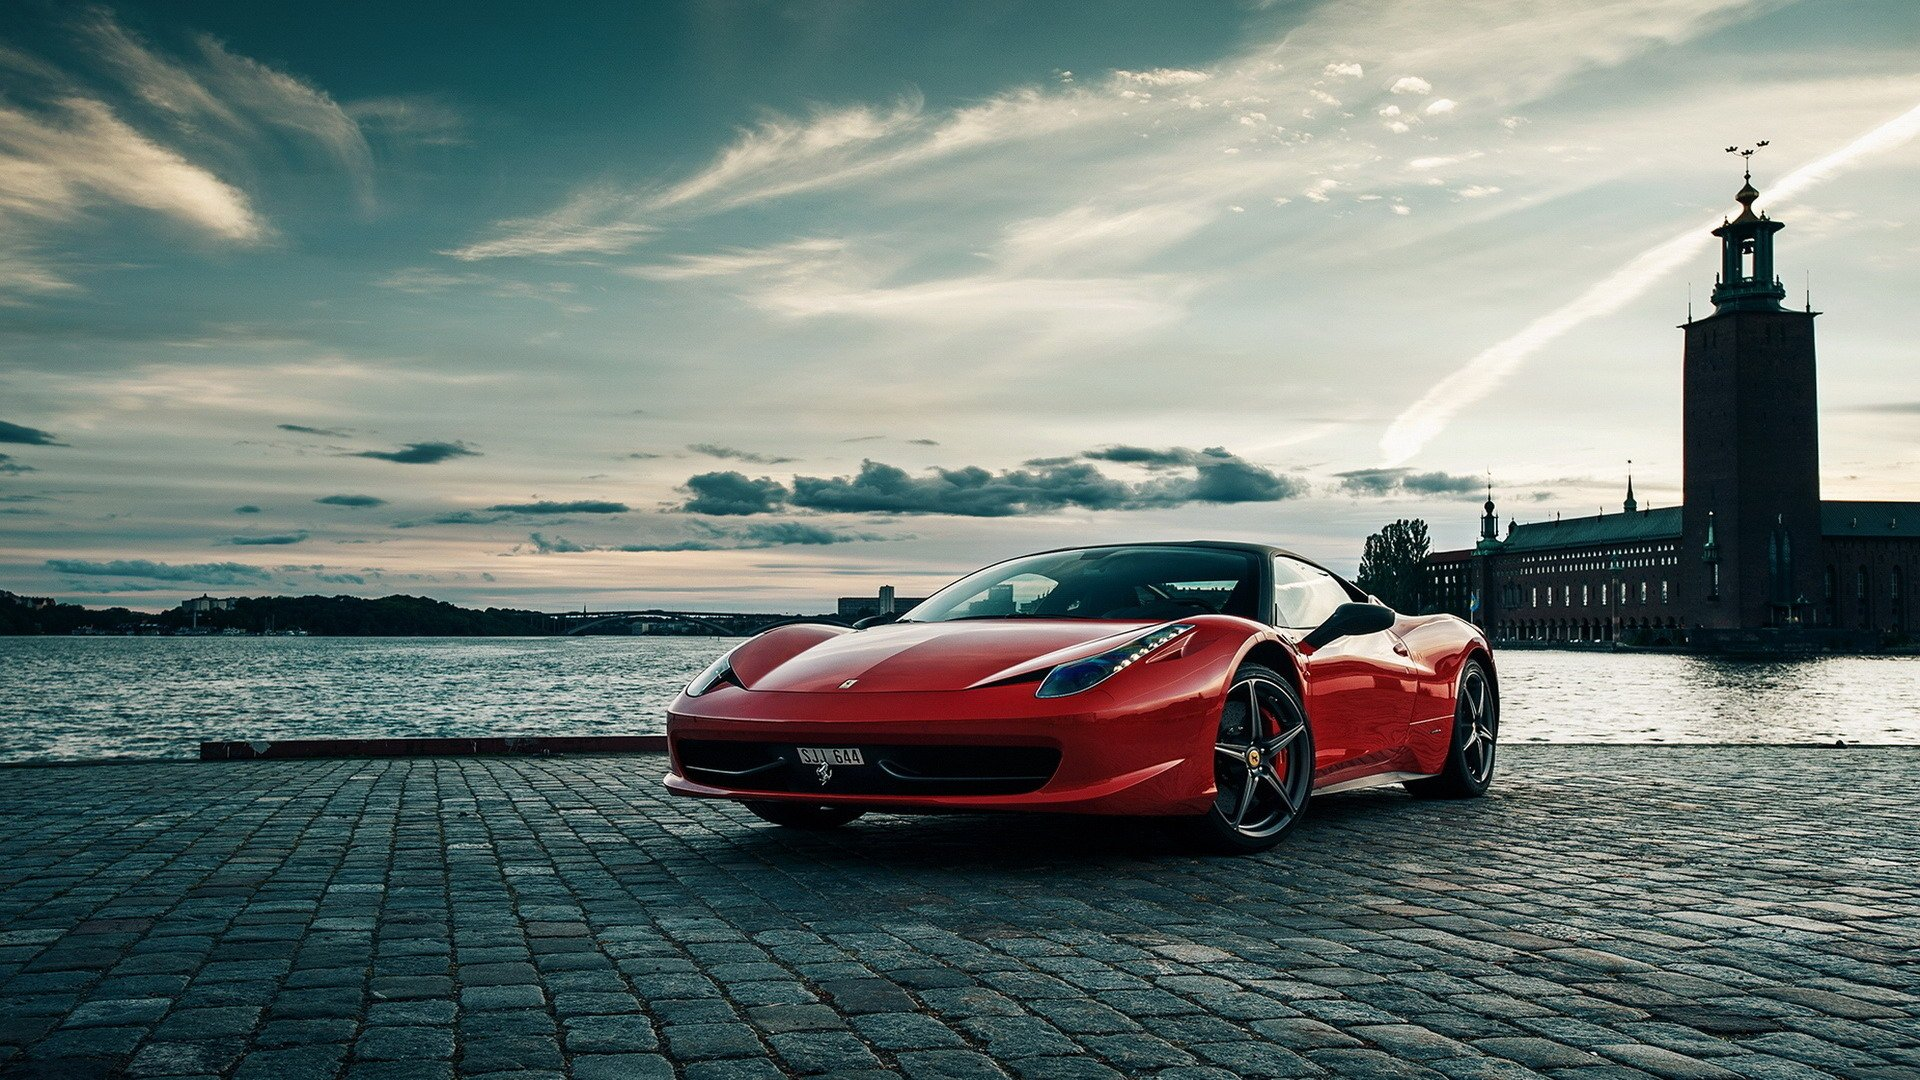 458 red color supercar Italy river HD Wallpaper Full HD 1080p 1920x1080